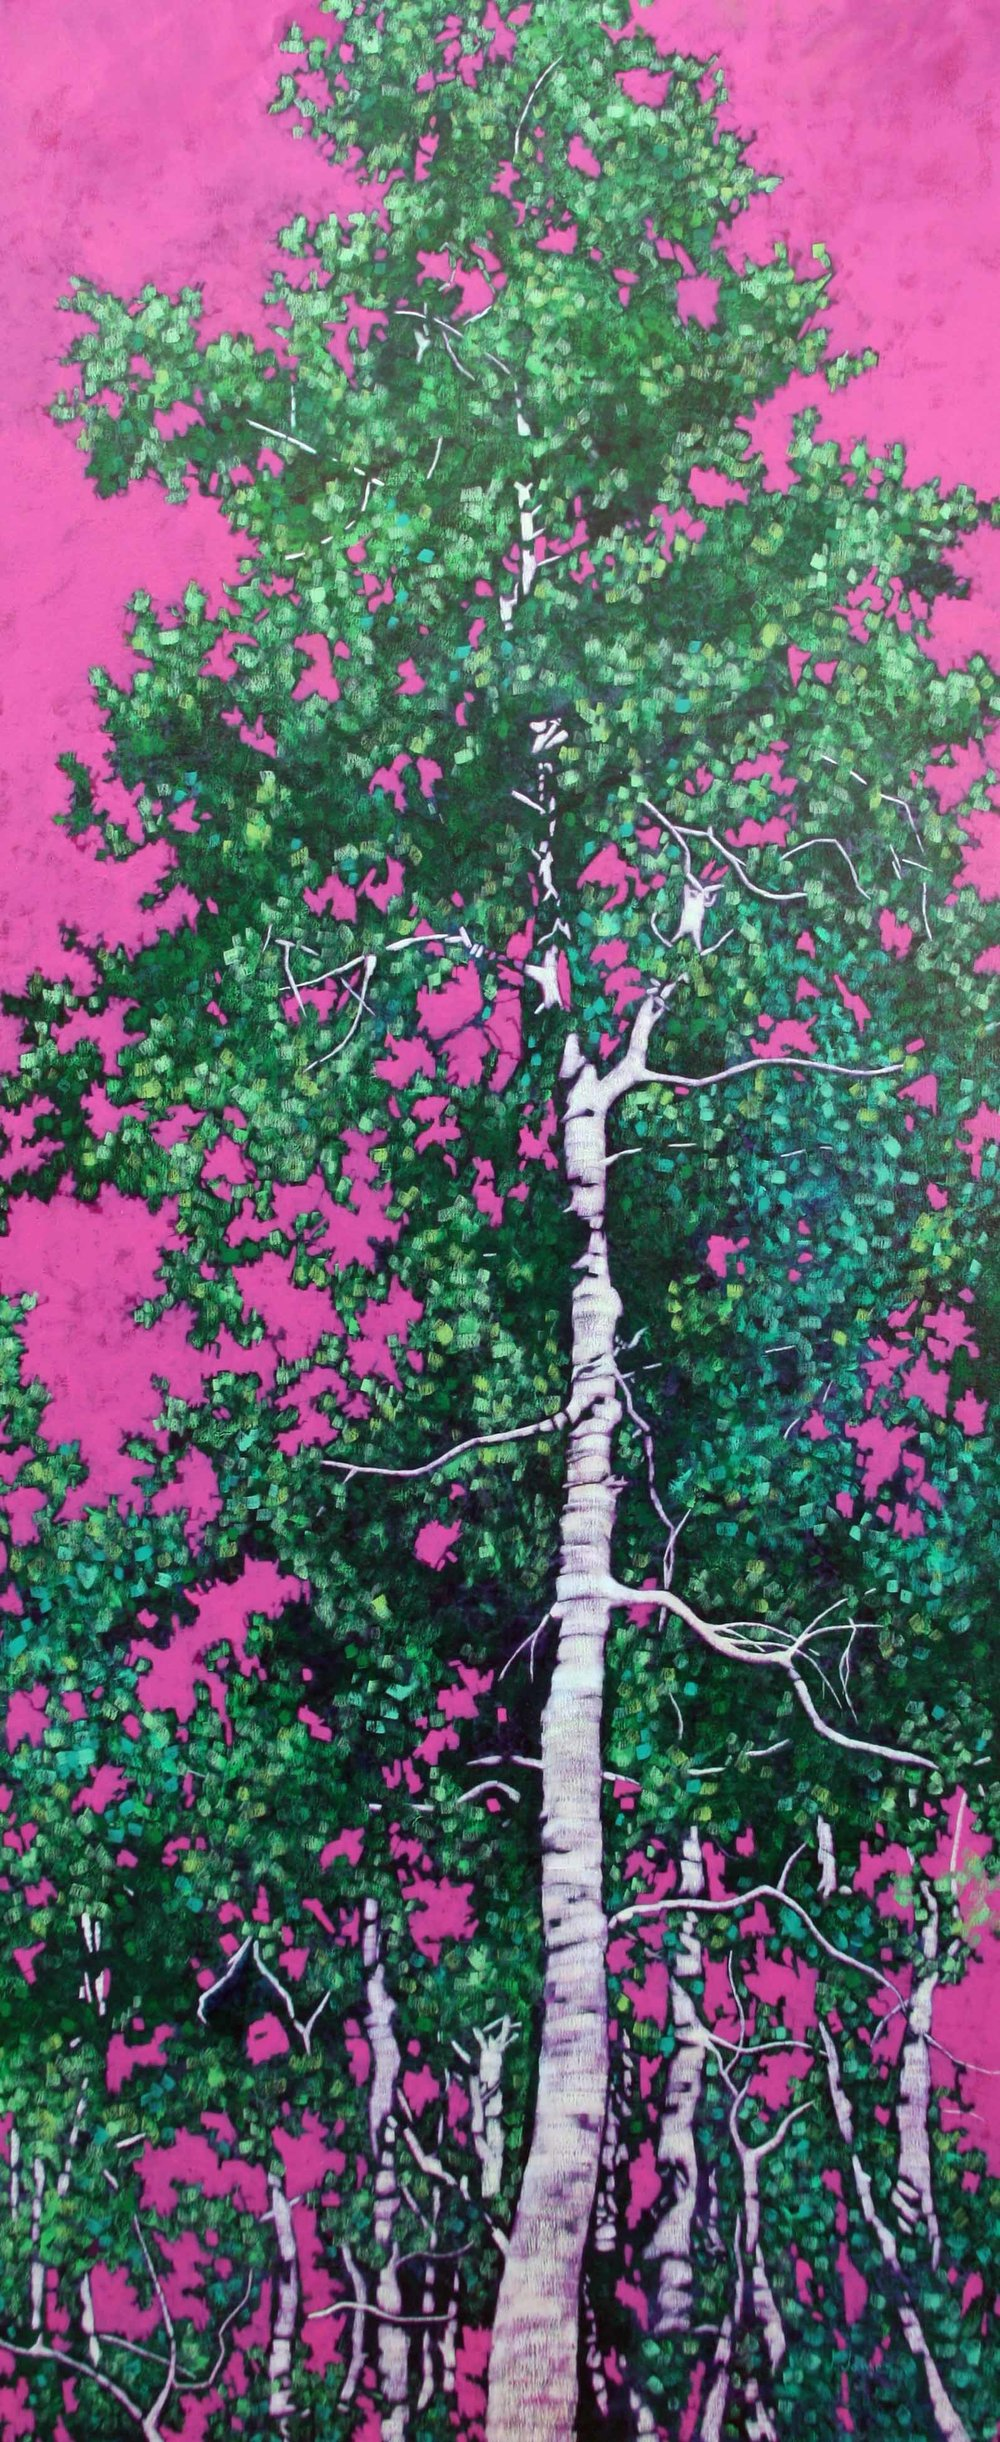 "In The Green, 72"" x 30"" Oil on Canvas"